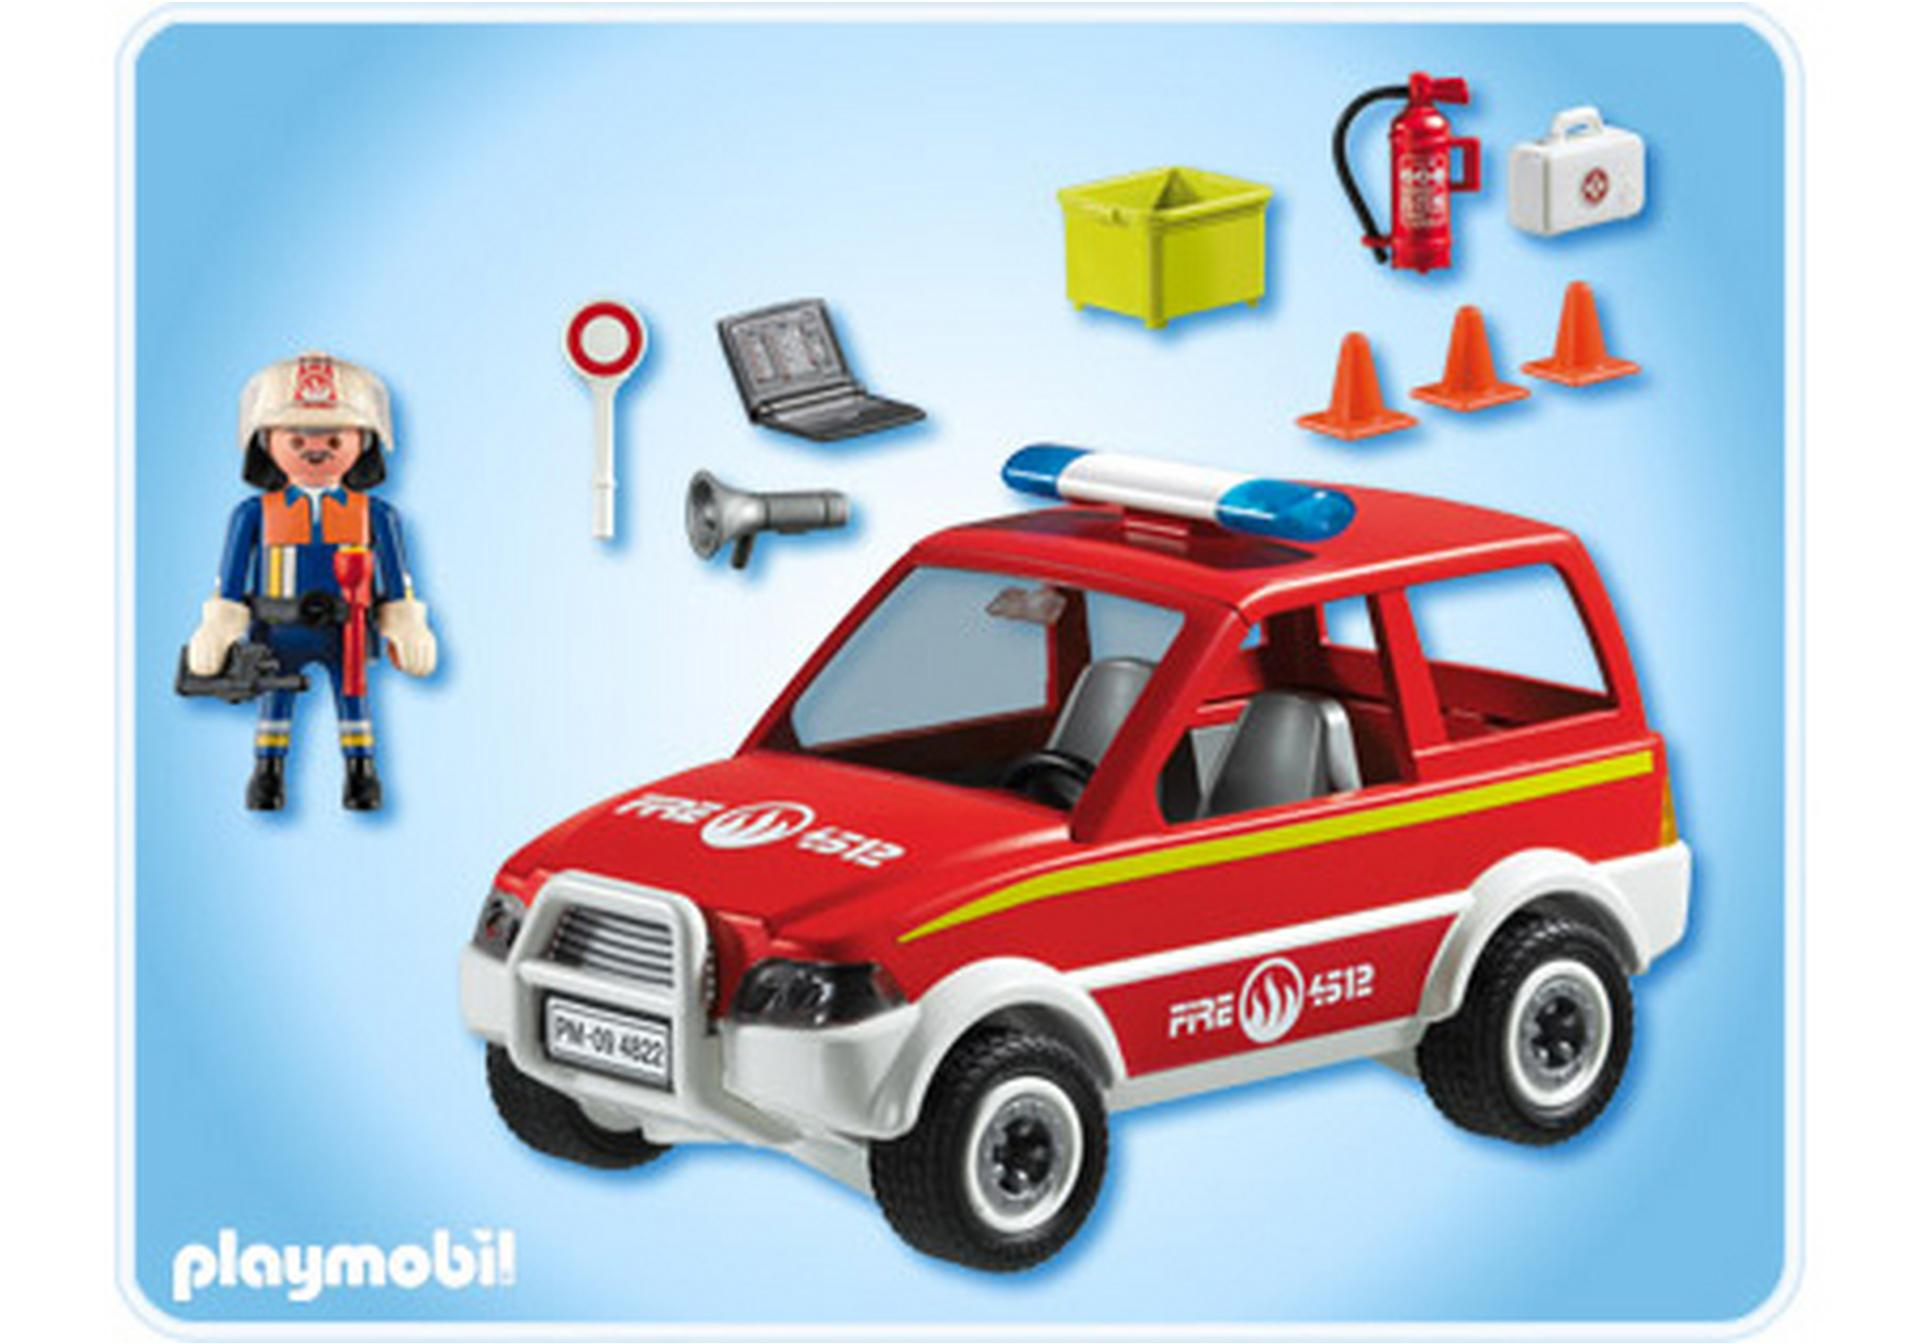 voiture de pompier 4822 a playmobil france. Black Bedroom Furniture Sets. Home Design Ideas